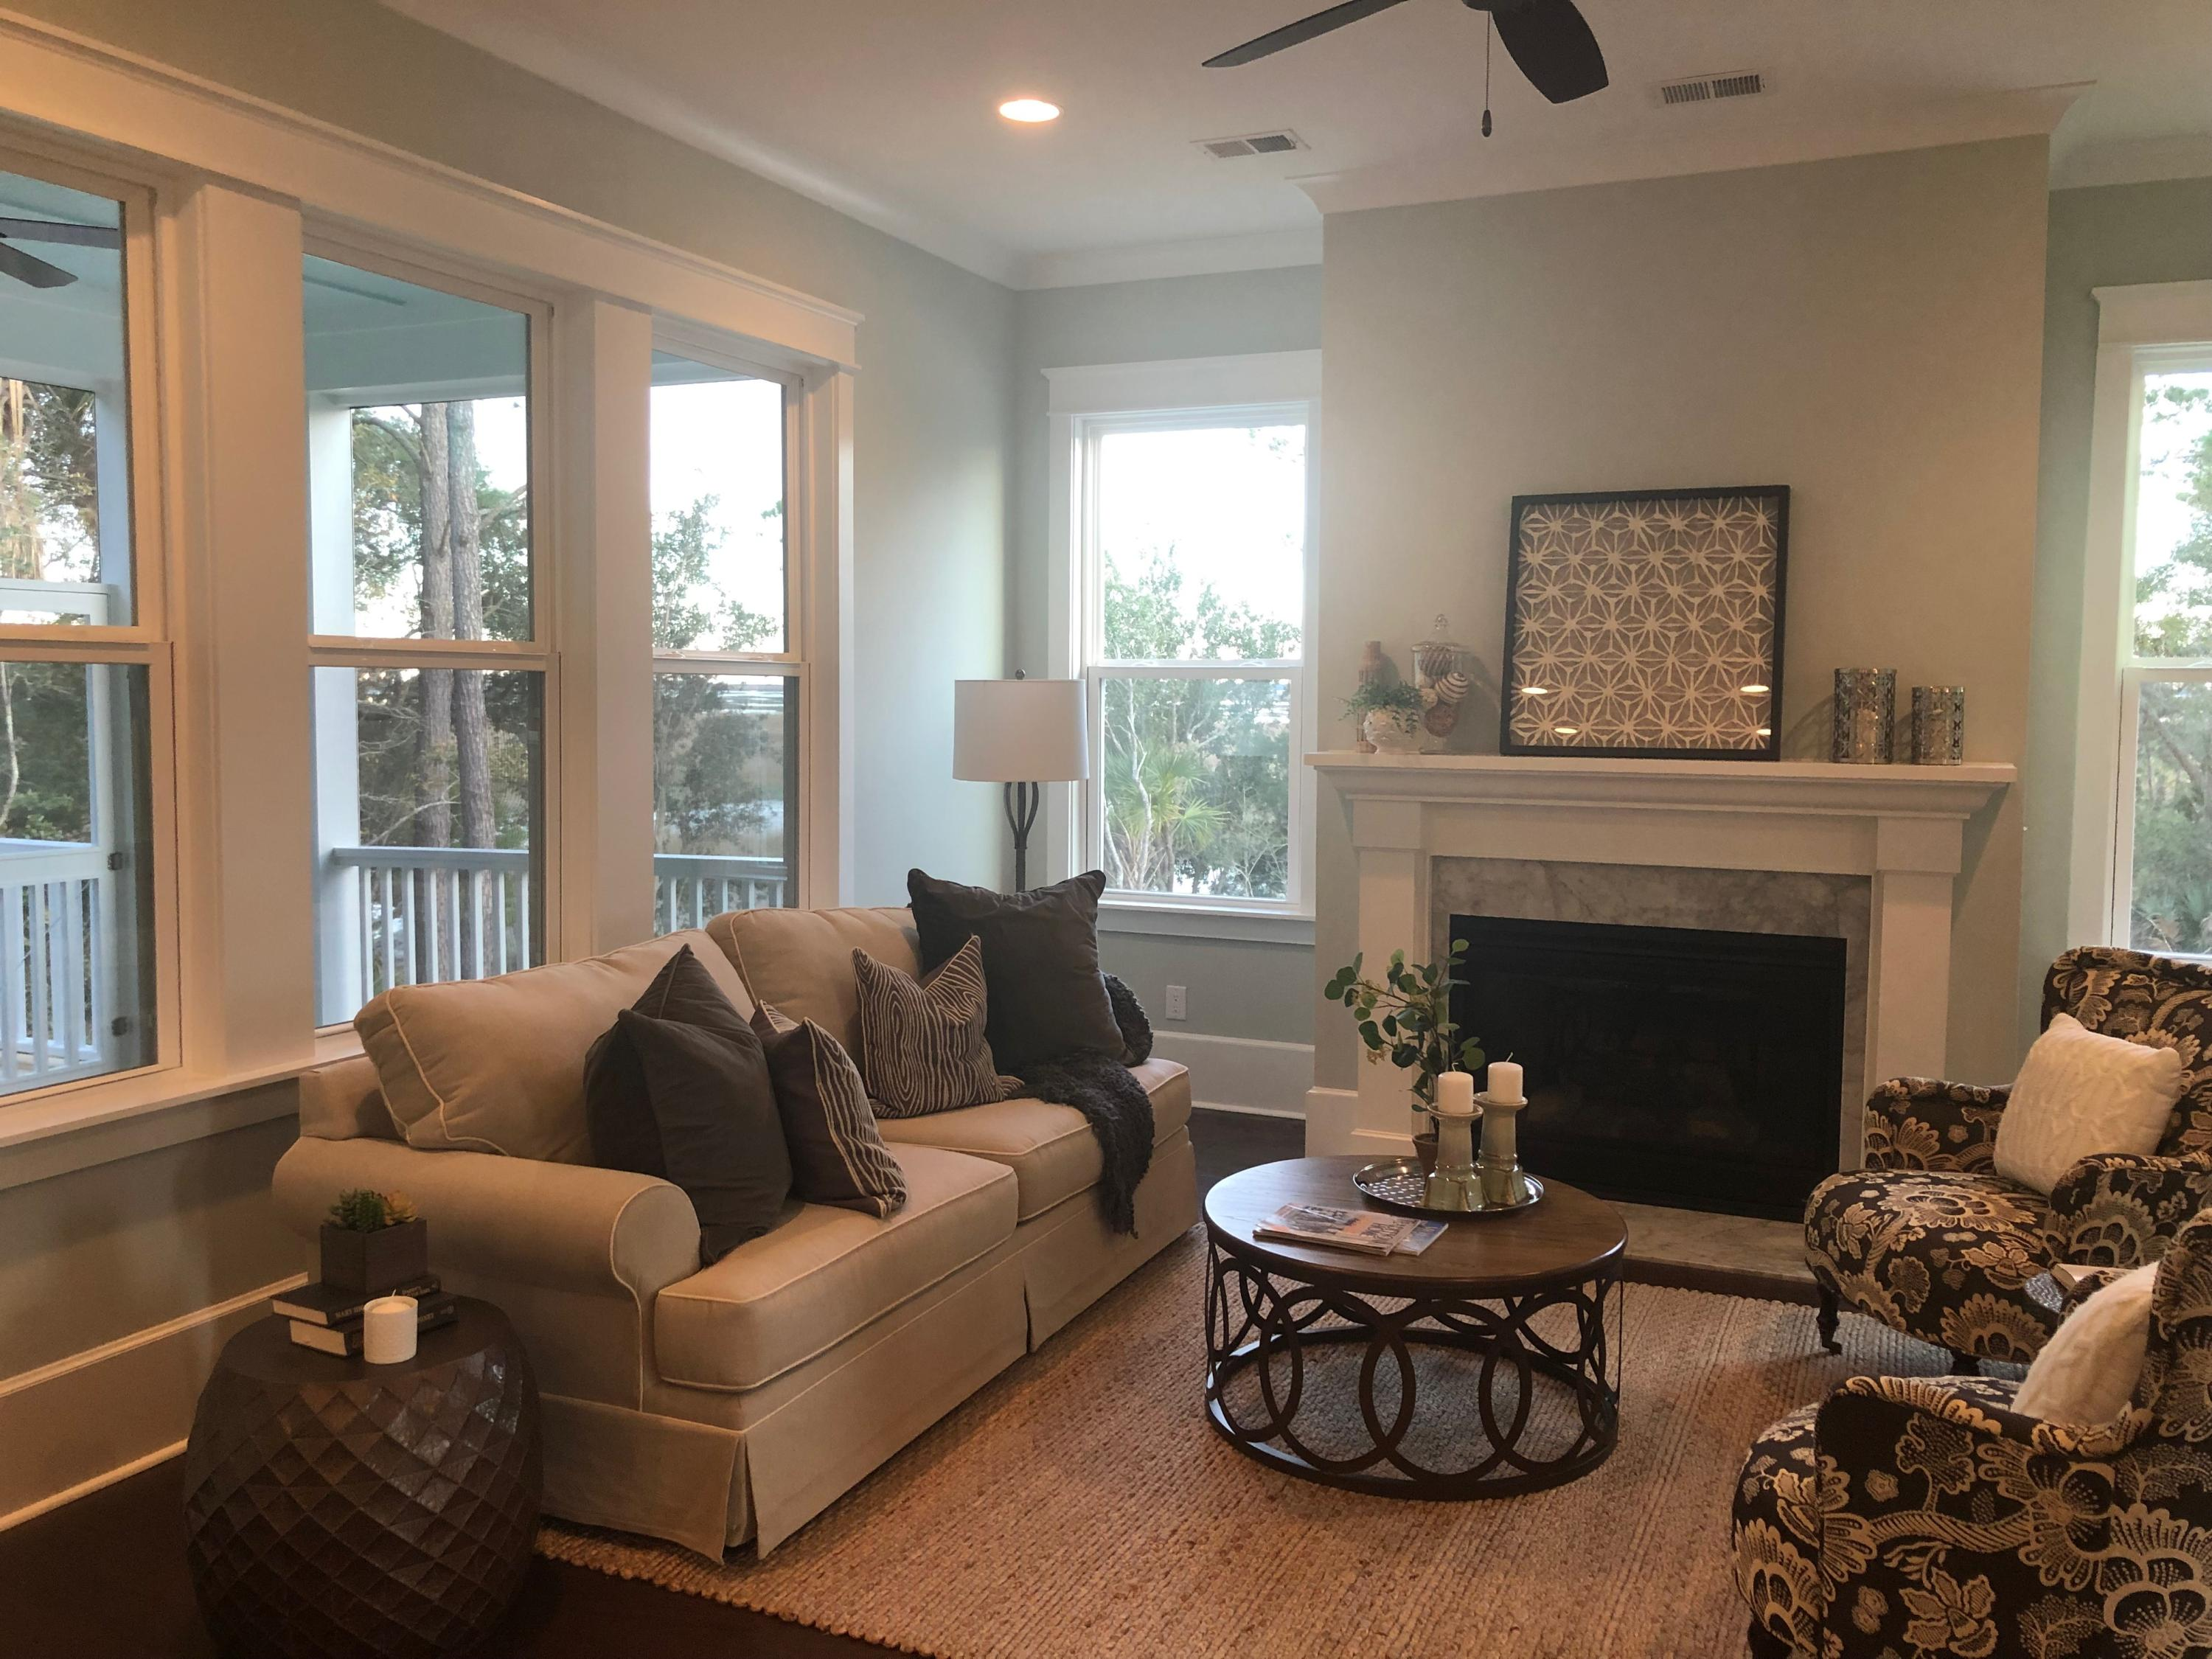 Stratton by the Sound Homes For Sale - 3628 Tidal Flat, Mount Pleasant, SC - 9